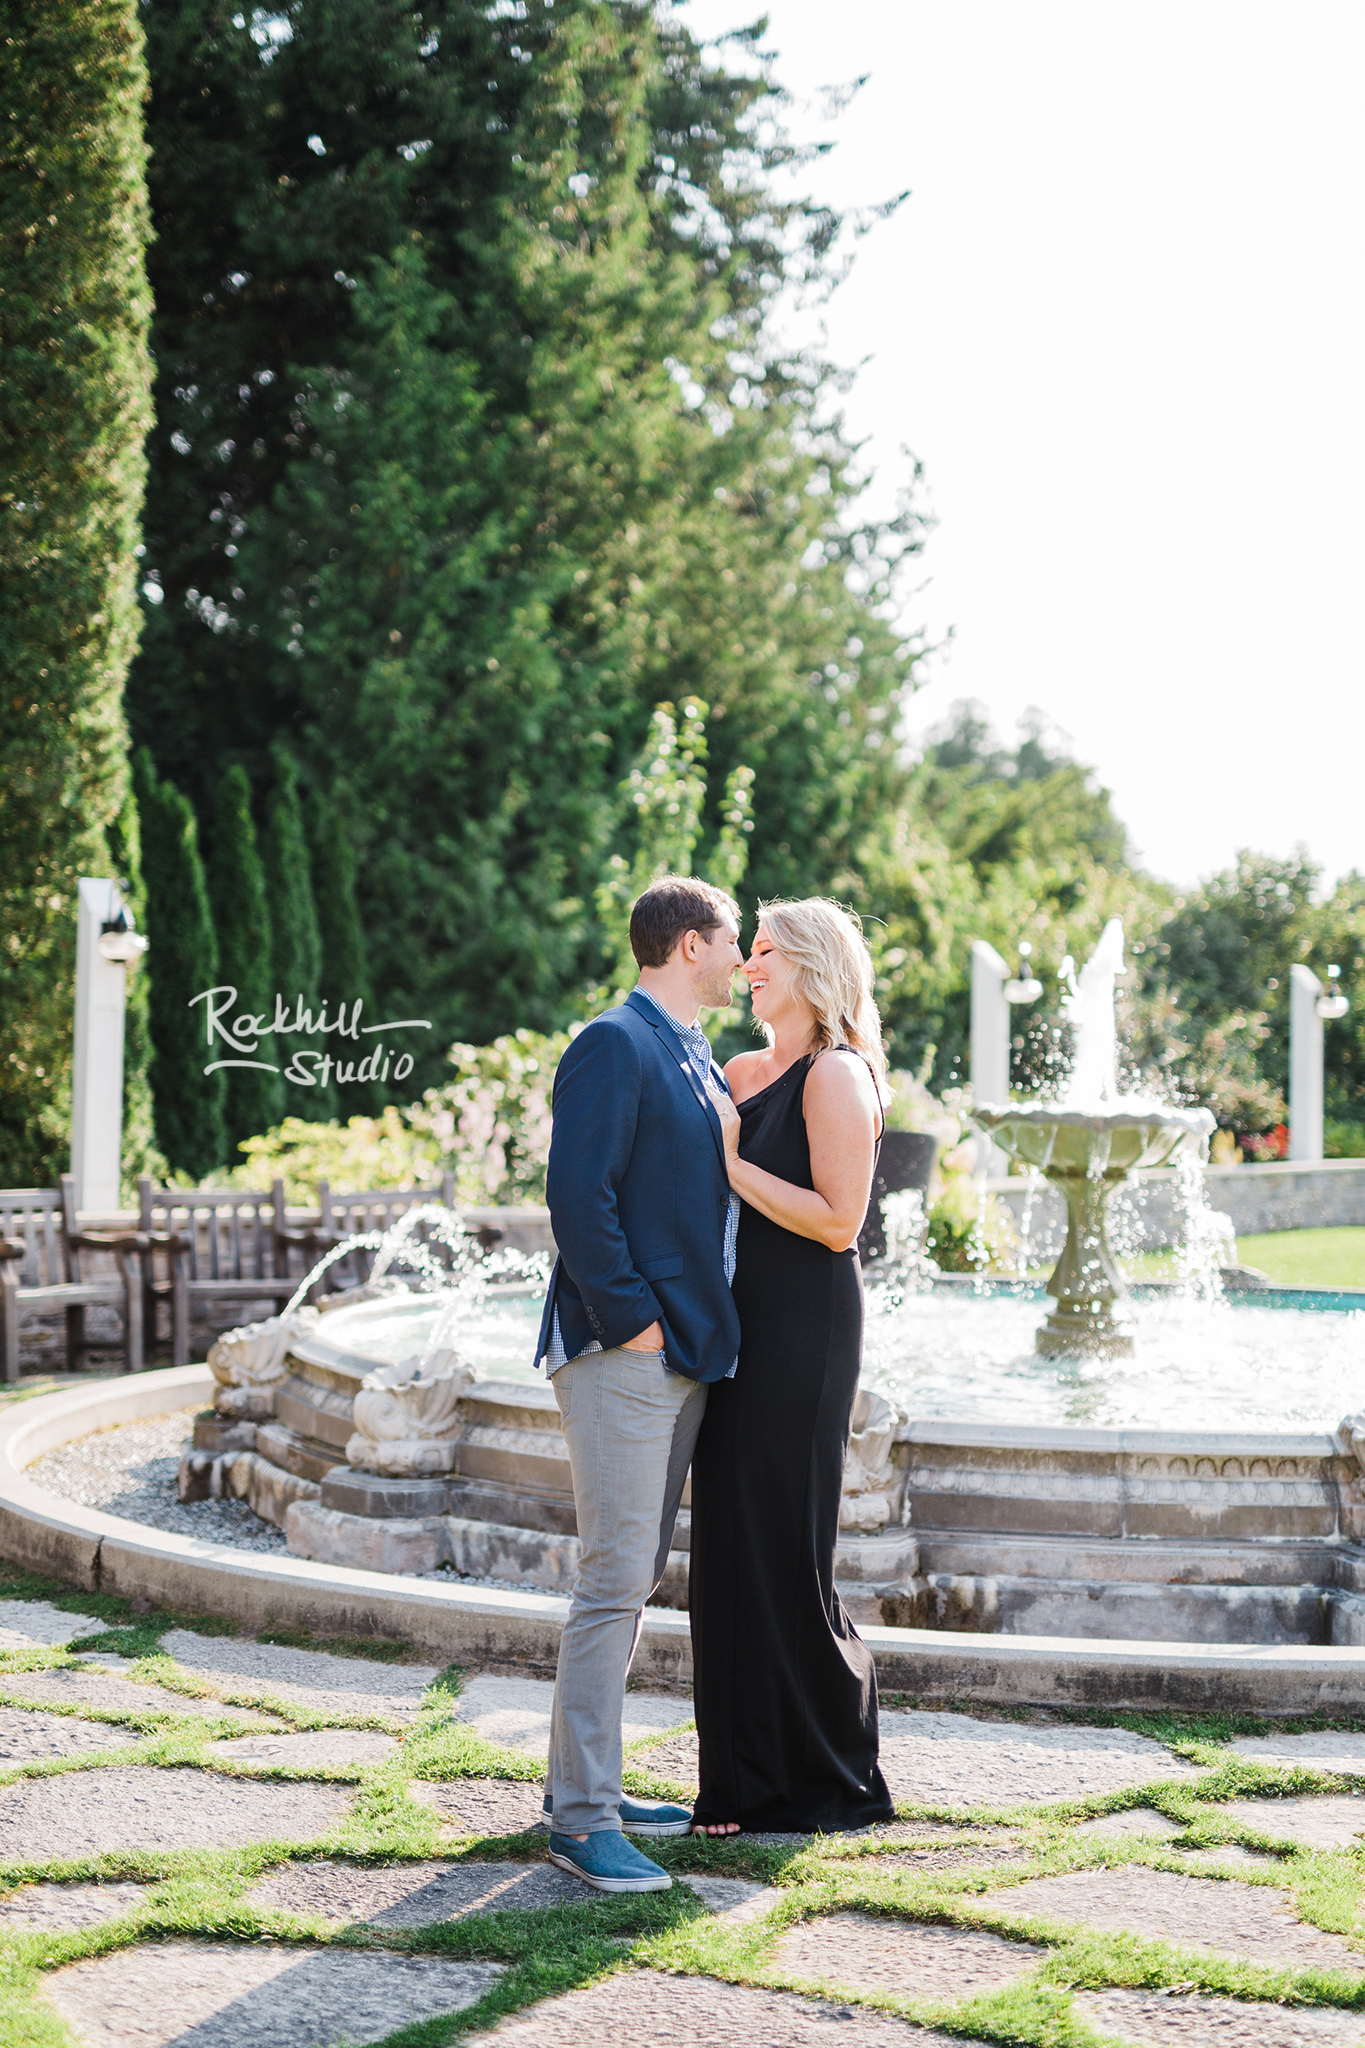 Mackinac Island Engagement, Grand Hotel fountain, Traverse City wedding photographer Rockhill Studio